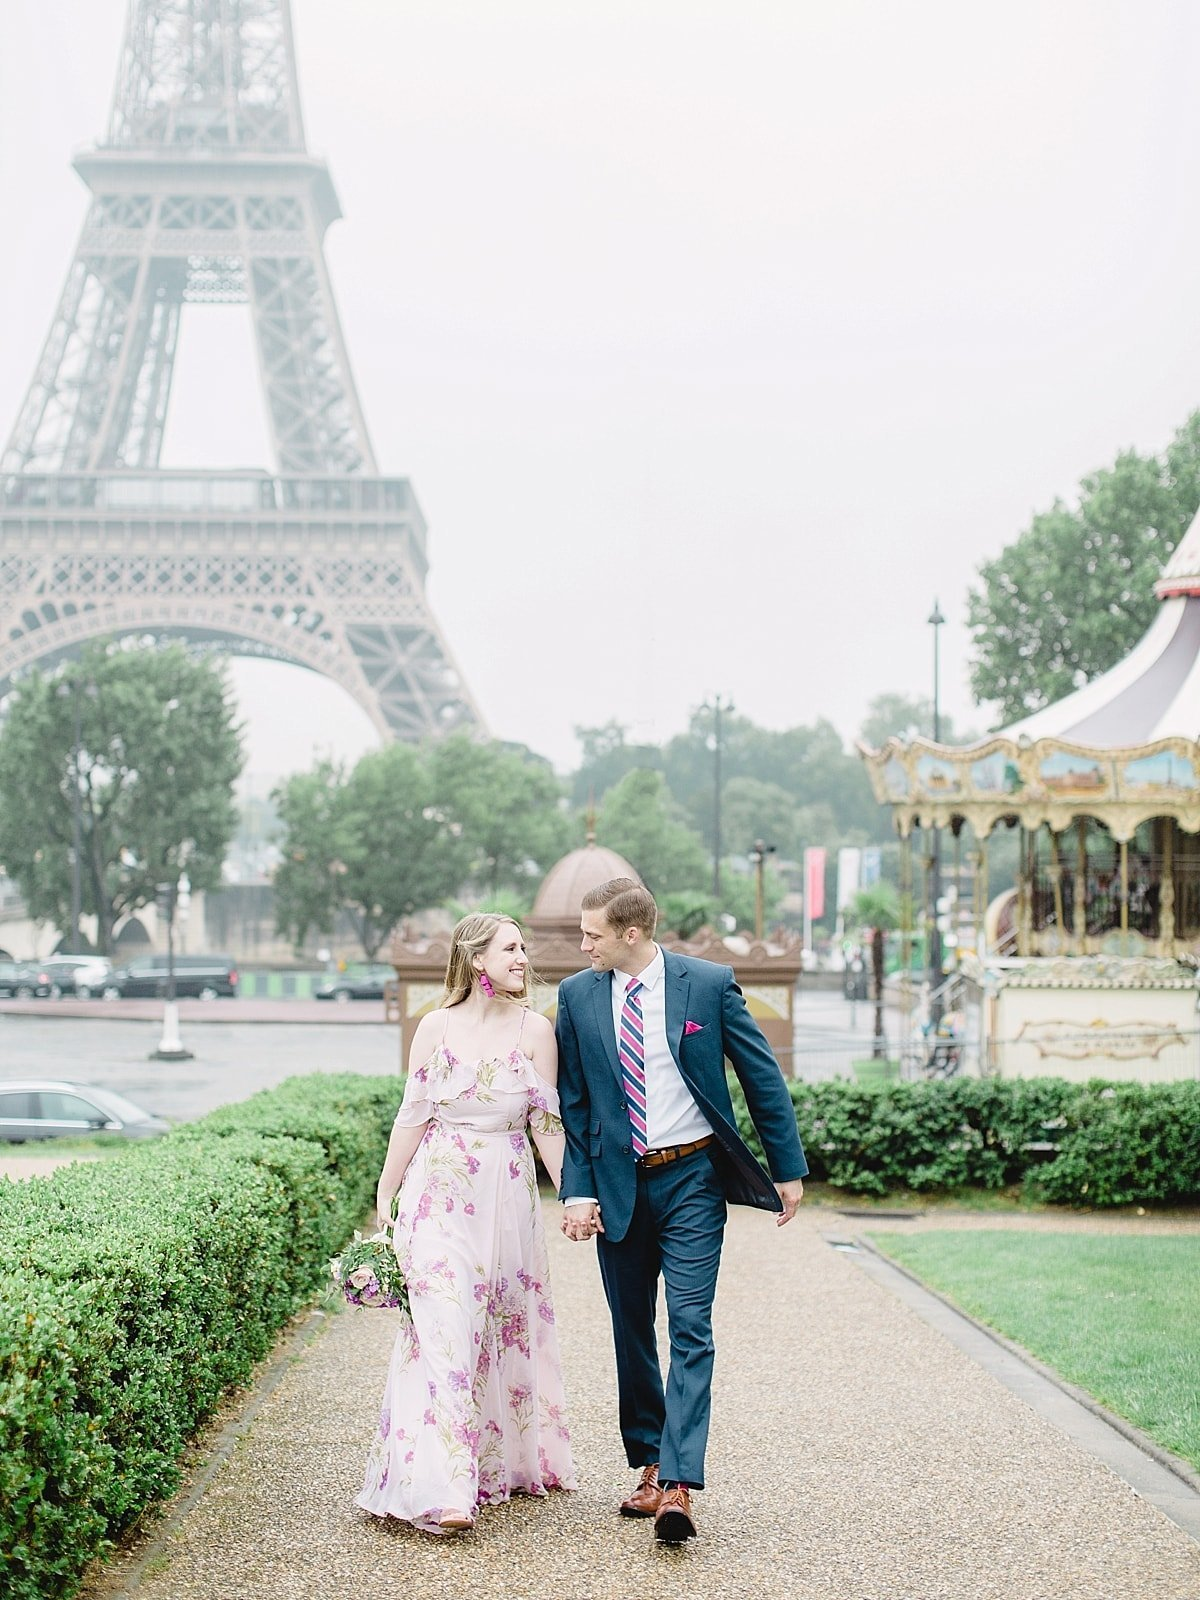 paris-photo-session-anniversary-alicia-yarrish-photography_26